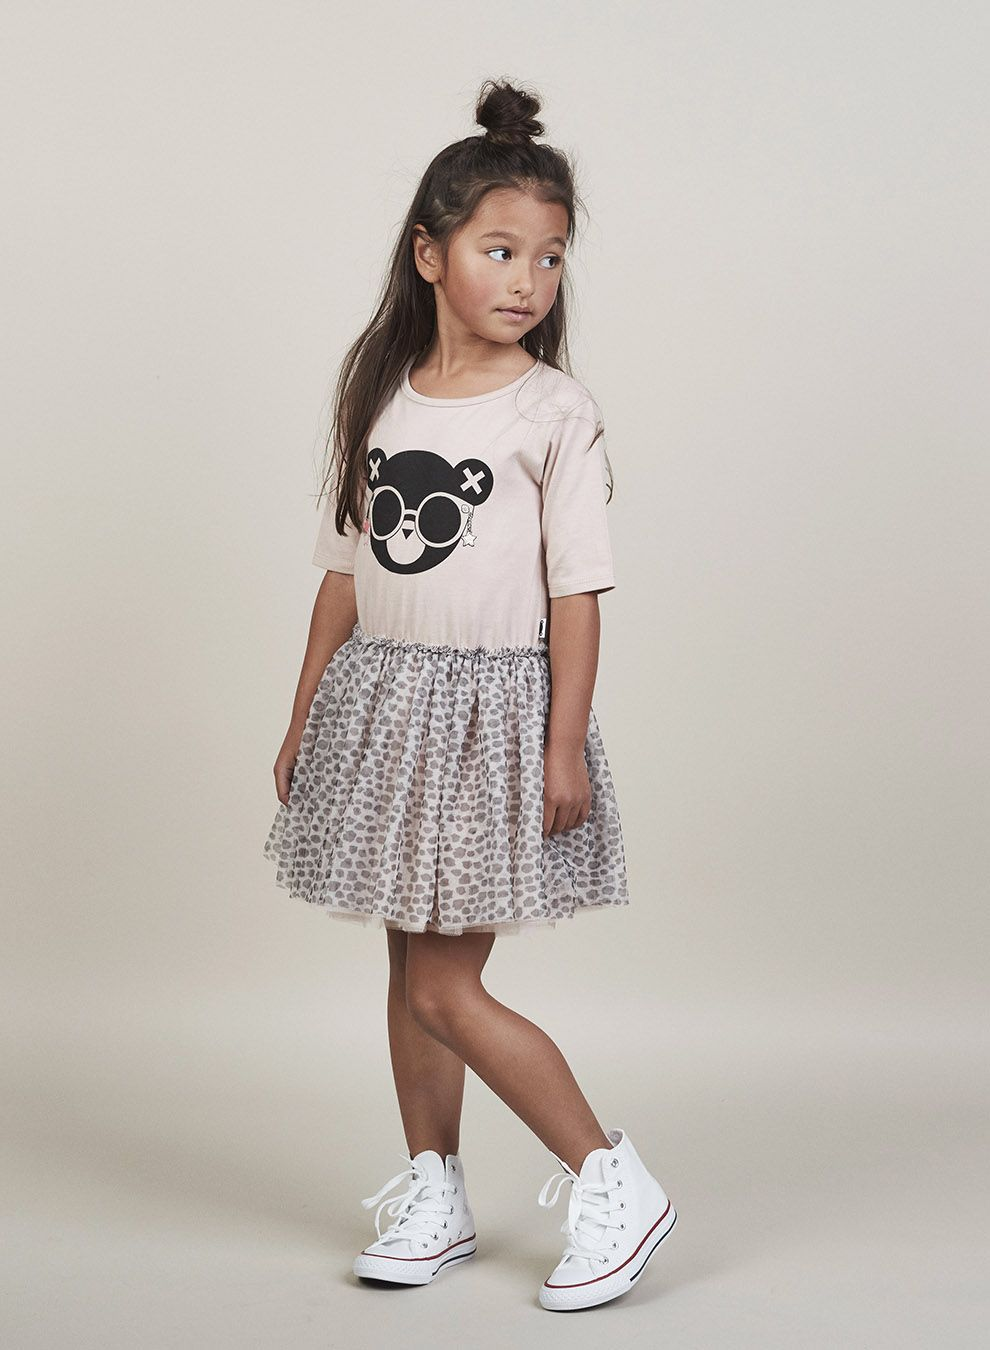 fashion clothes, Baby boutique clothing